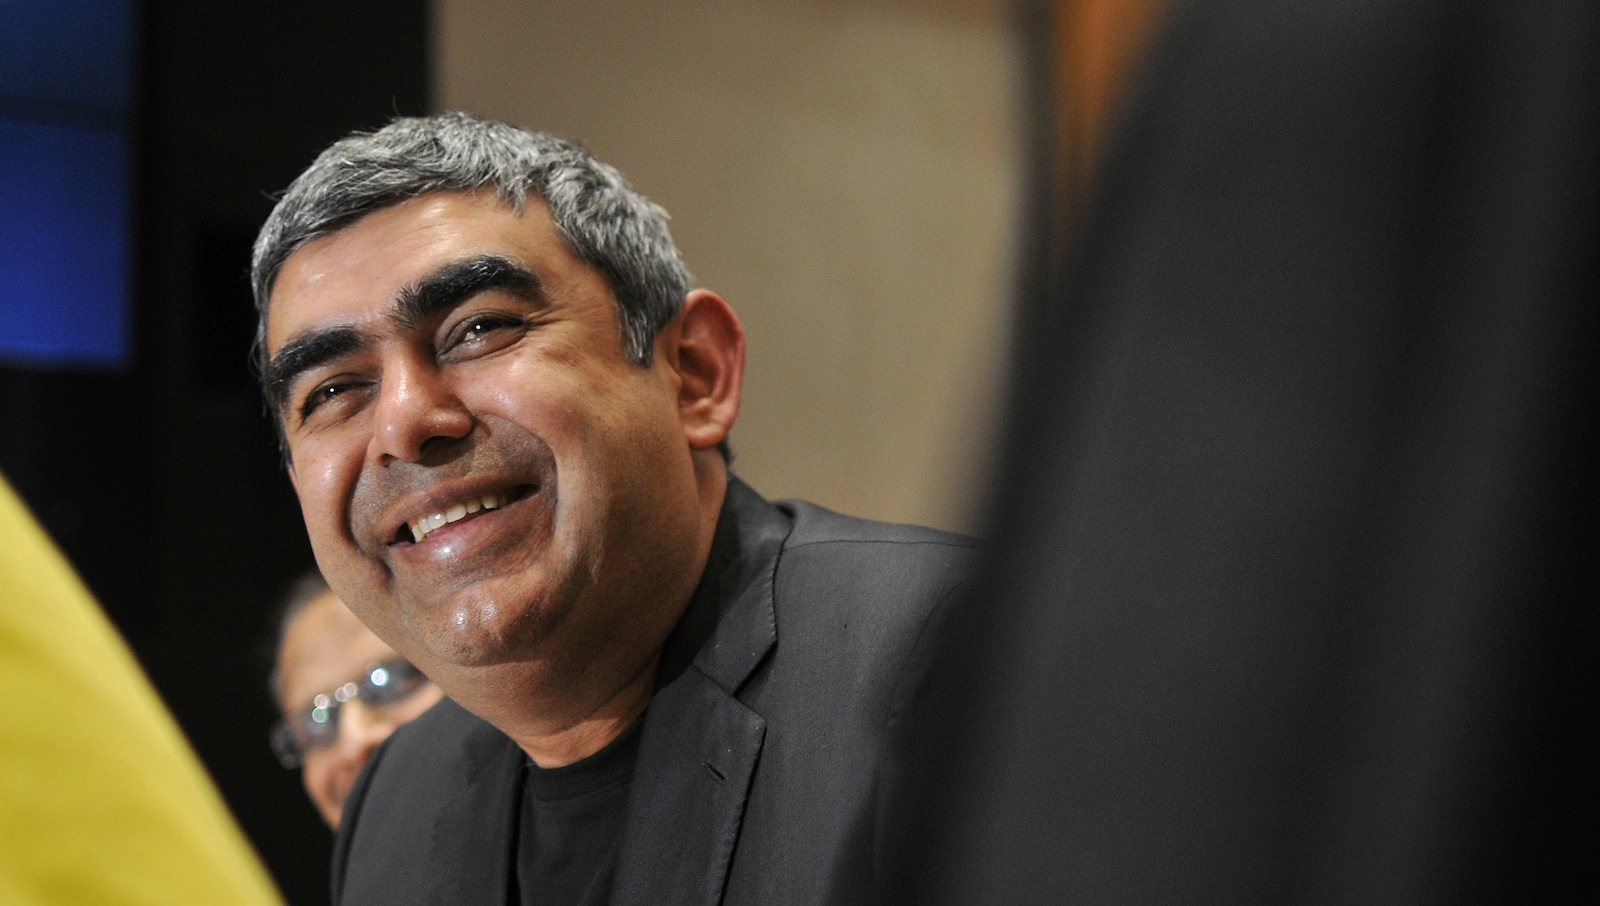 Infosys Chief Executive Officer Vishal Sikka smiles during the announcement of the company's quarterly financial results at its headquarters in the southern Indian city of Bengaluru January 9, 2015. Shares in software services exporter Infosys Ltd rose almost 7 percent on Friday after it surprised investors by sticking to its full-year sales target, thanks to healthy demand that helped offset the impact of a stronger dollar. Infosys, which posted a 13 percent rise in third-quarter profit, confirmed it expects sales growth of 7 to 9 percent for the year ending in March 2015, in constant currency terms and based on exchange rates for the September quarter.